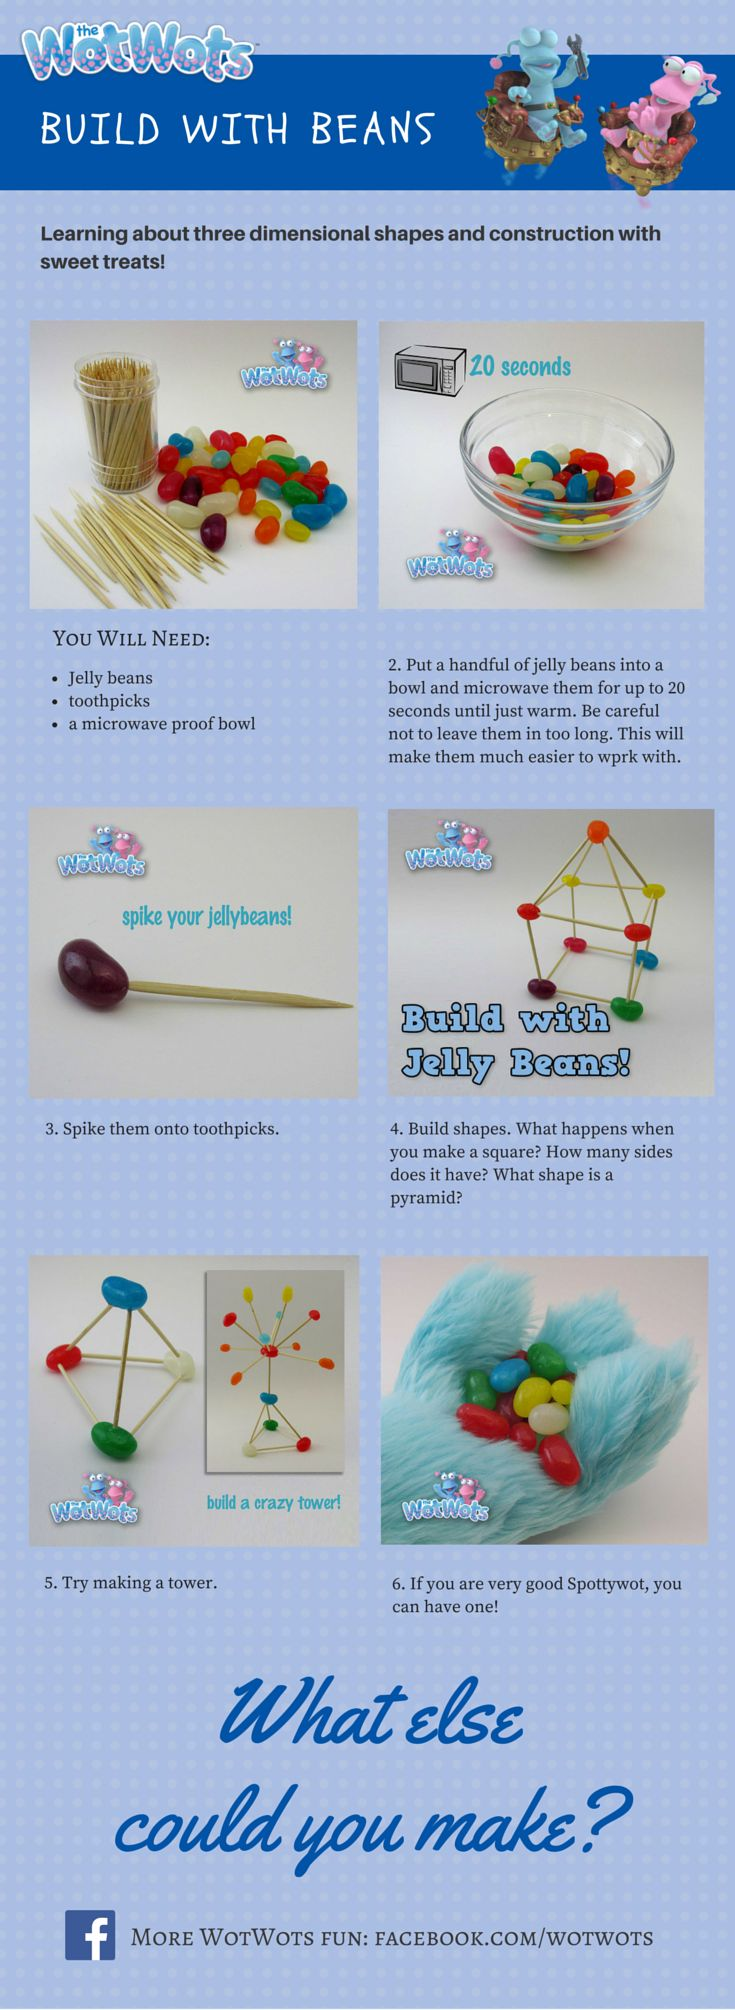 Build-With-Beans-1.png (735×2010)